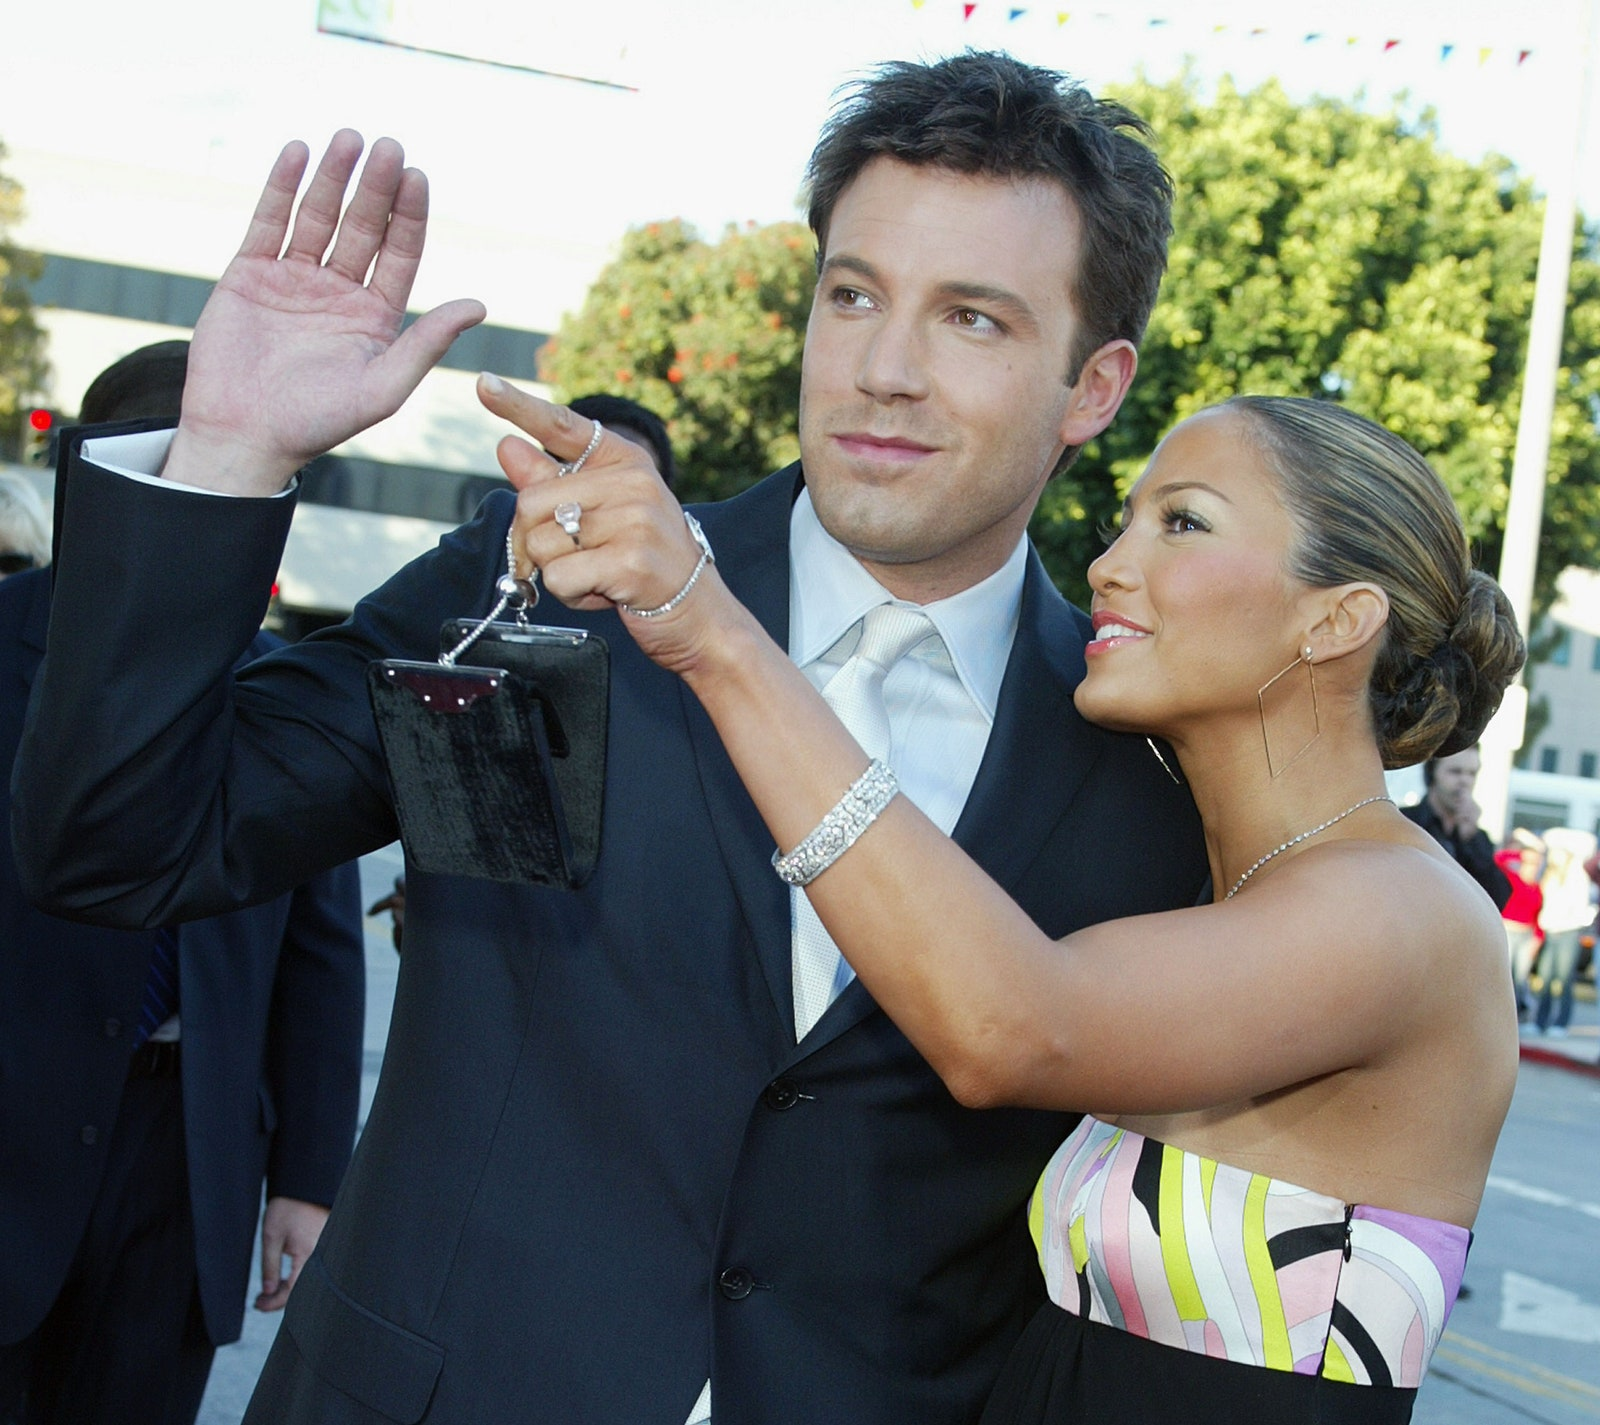 Jennifer Lopez secretly meets a famous actor with whom she was engaged The paparazzi caught Ben Affleck getting out of Jennifer Lopez's jeep